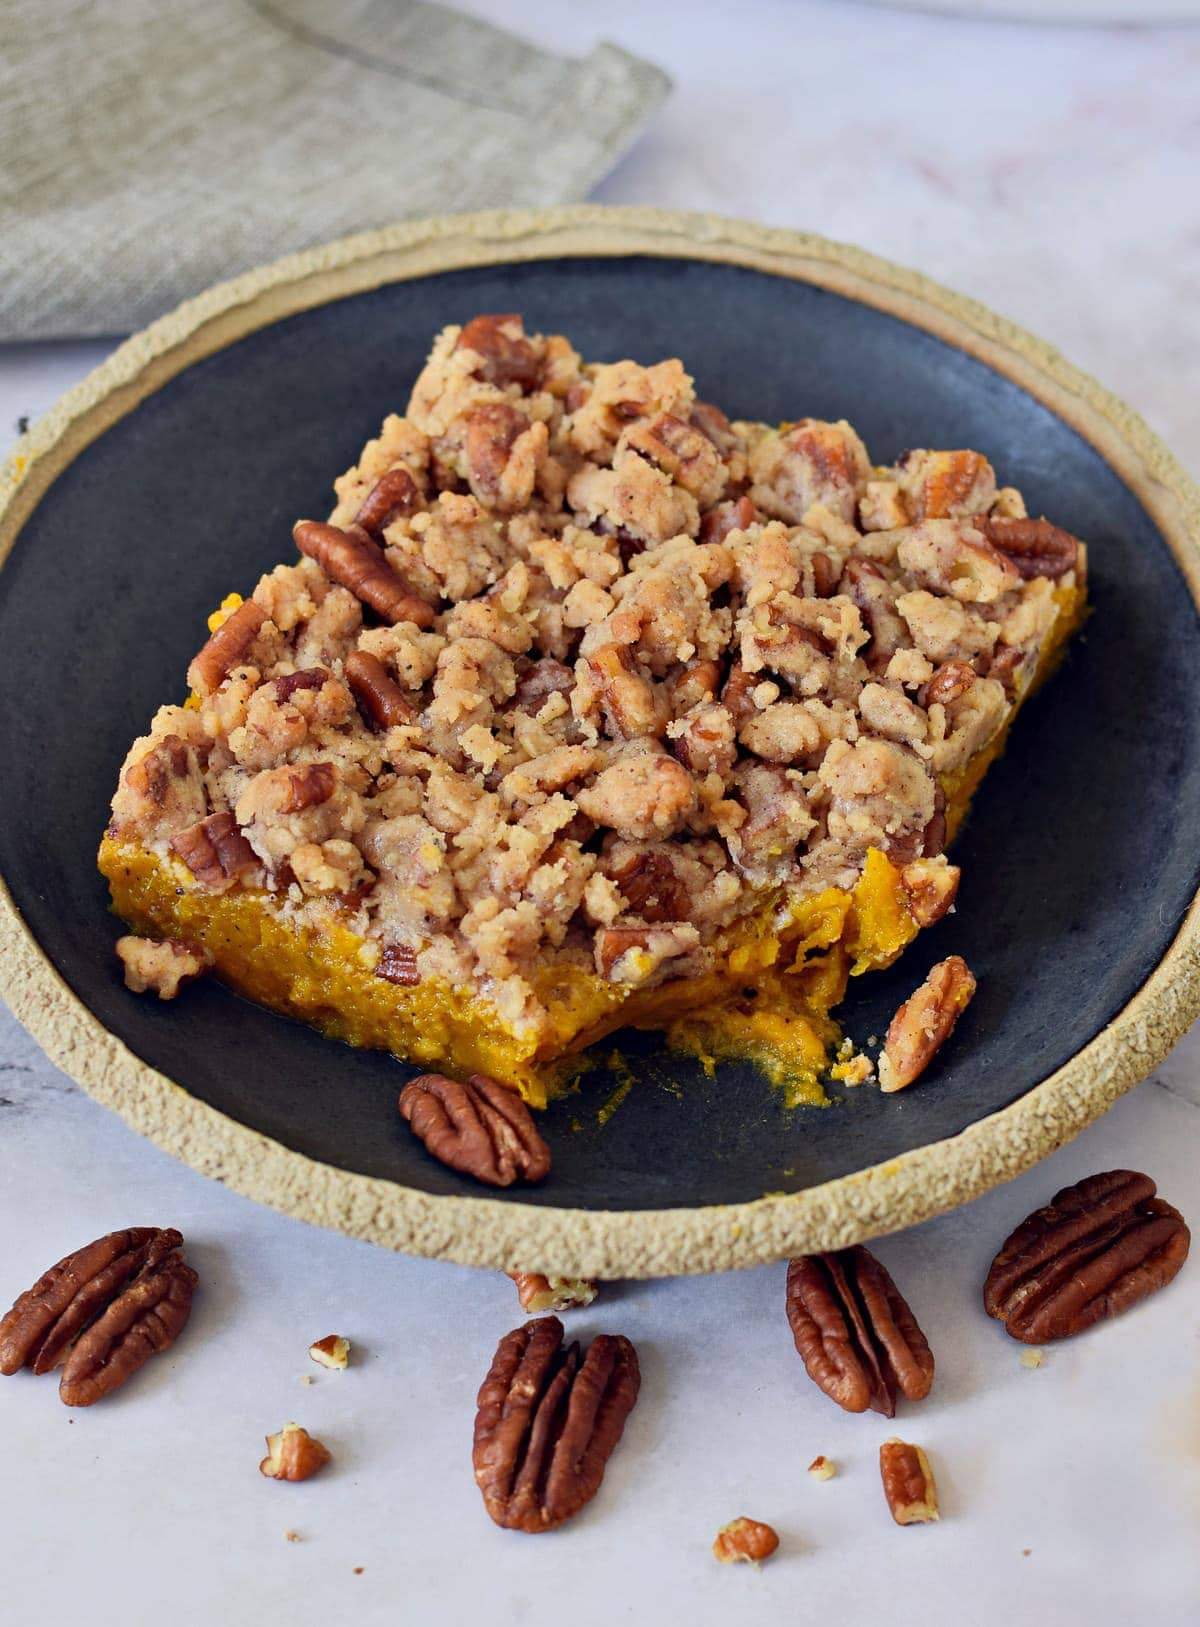 A piece of a healthy bake with streusel pecan topping on black plate